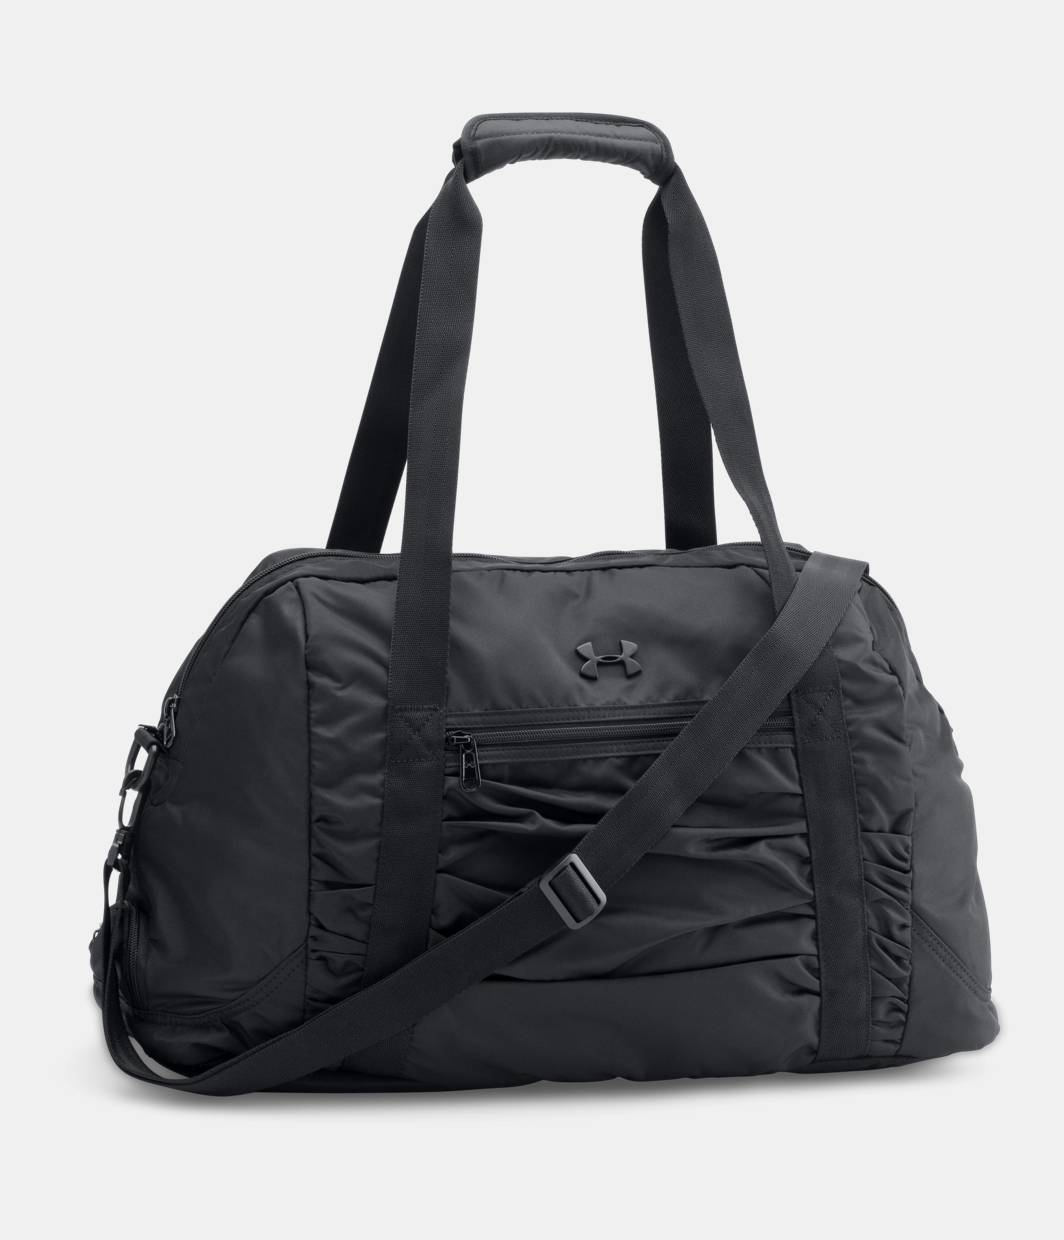 Whether you're into Cardio or yoga, we have the right bag for you! Keep all your athletic essentials organized with our heavy duty and durable Duffelgear bags! we have a large selection of sport and gym bags, including large duffle bags.